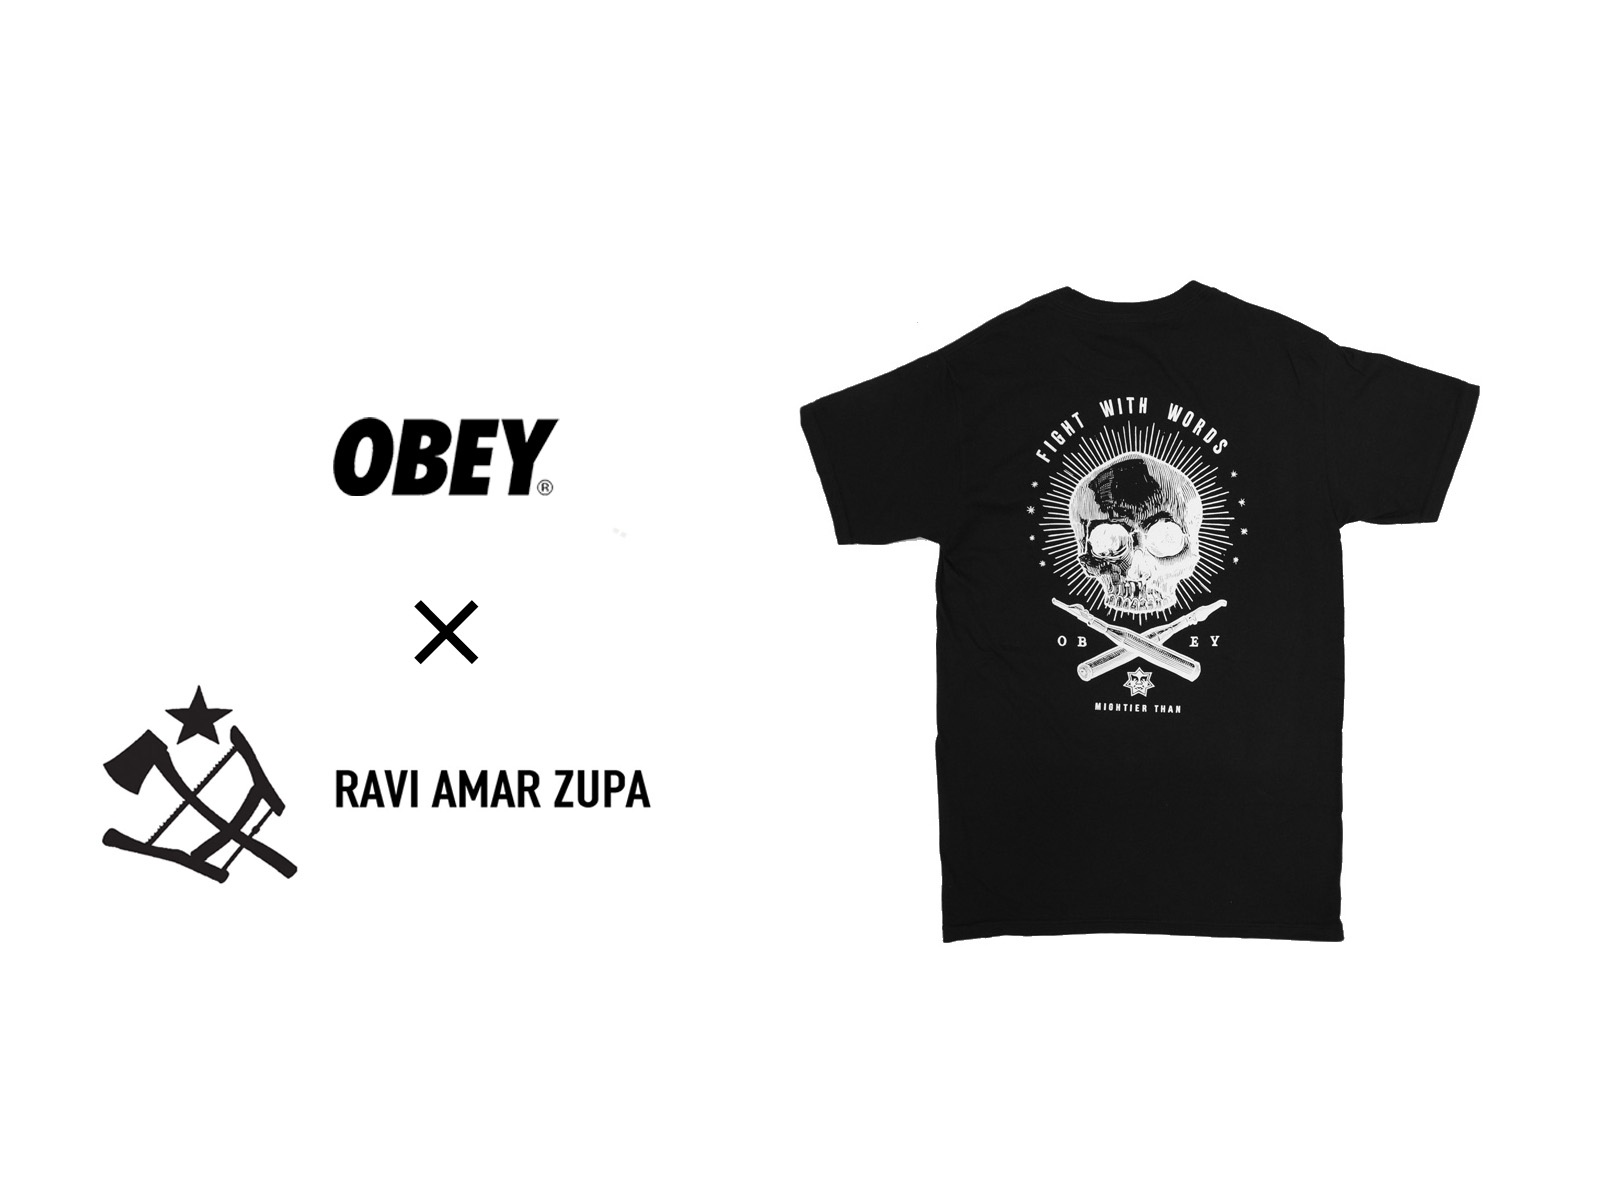 OBEY × RAVI ZUPA CAPSULE COLLECTION